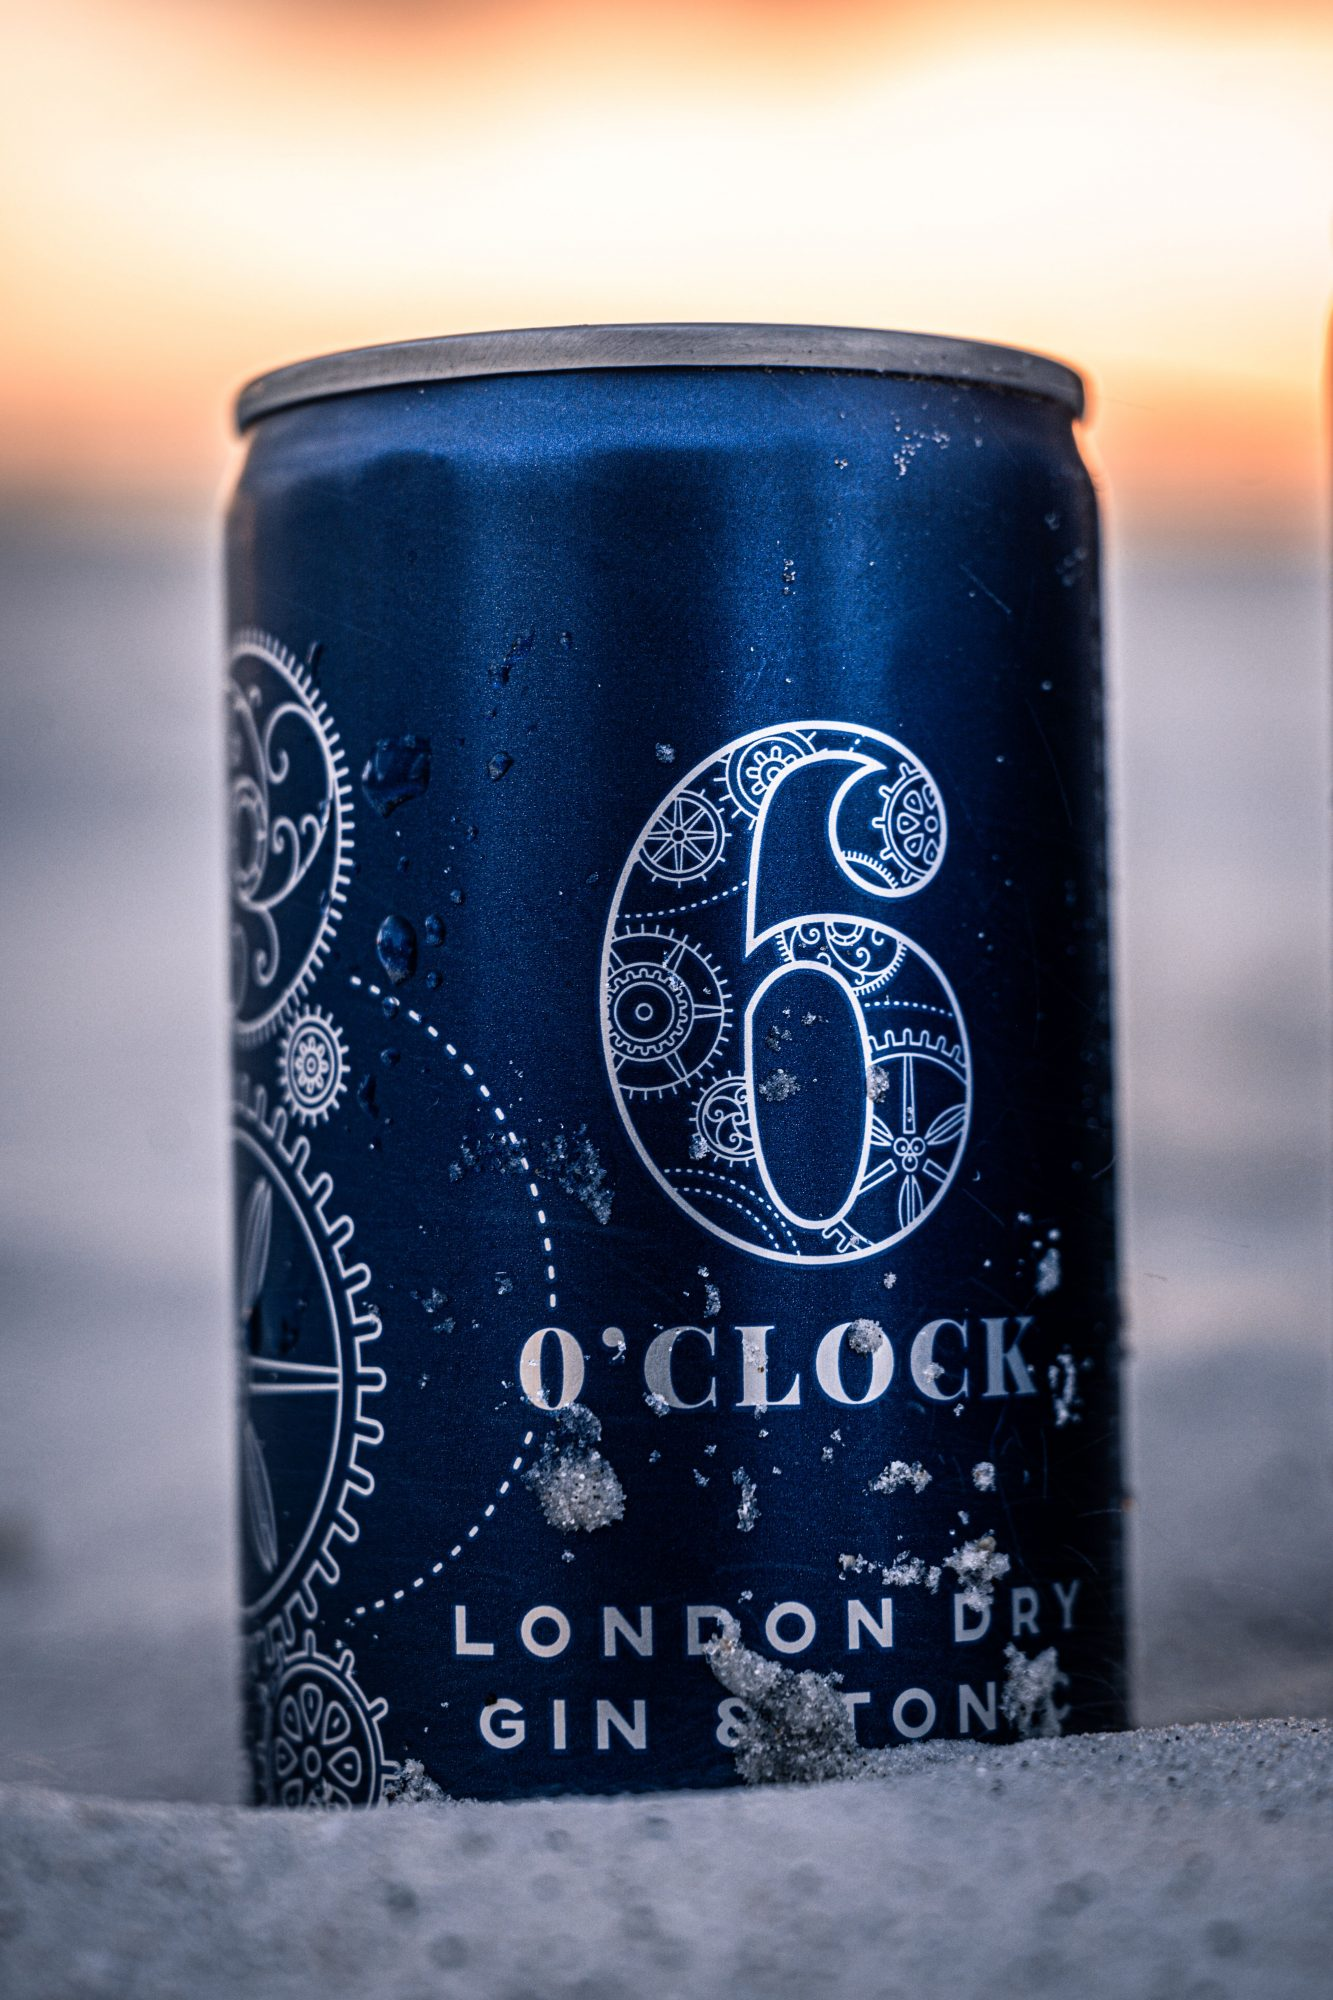 6 O'Clock Gin Canned Cocktail